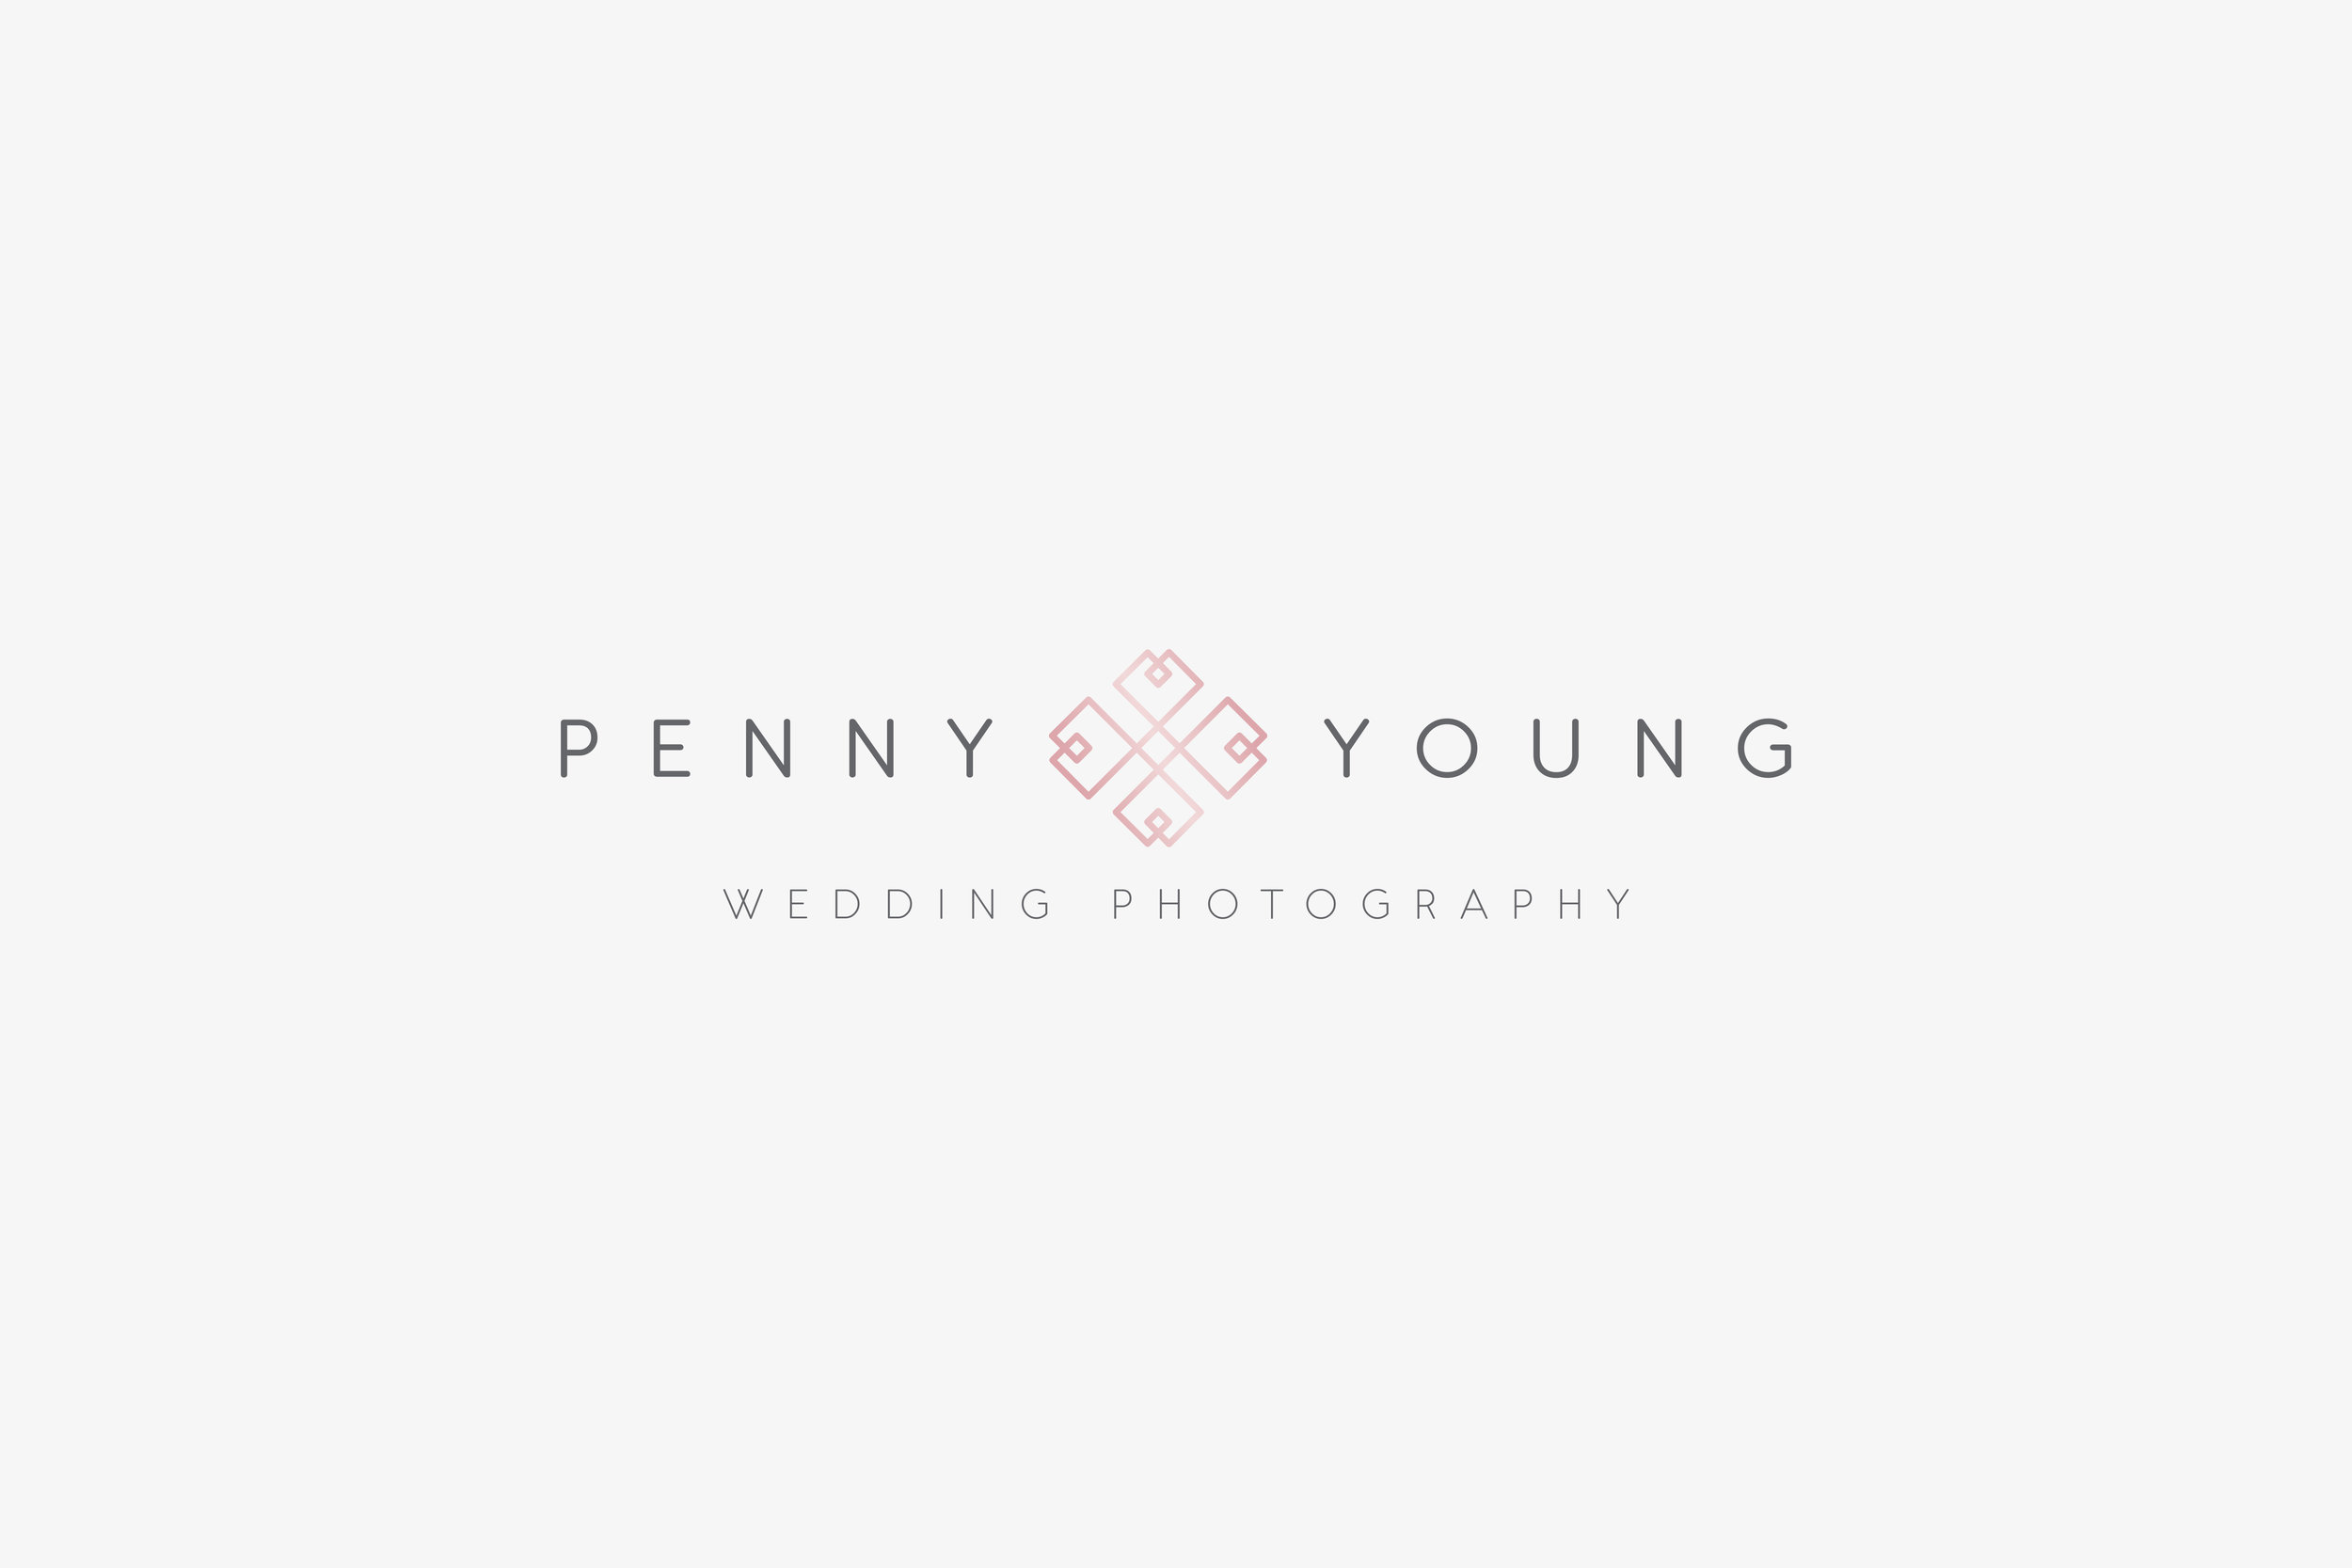 Logo Design agency for Penny Young, Wedding Photographer, based in Tonbridge, Kent